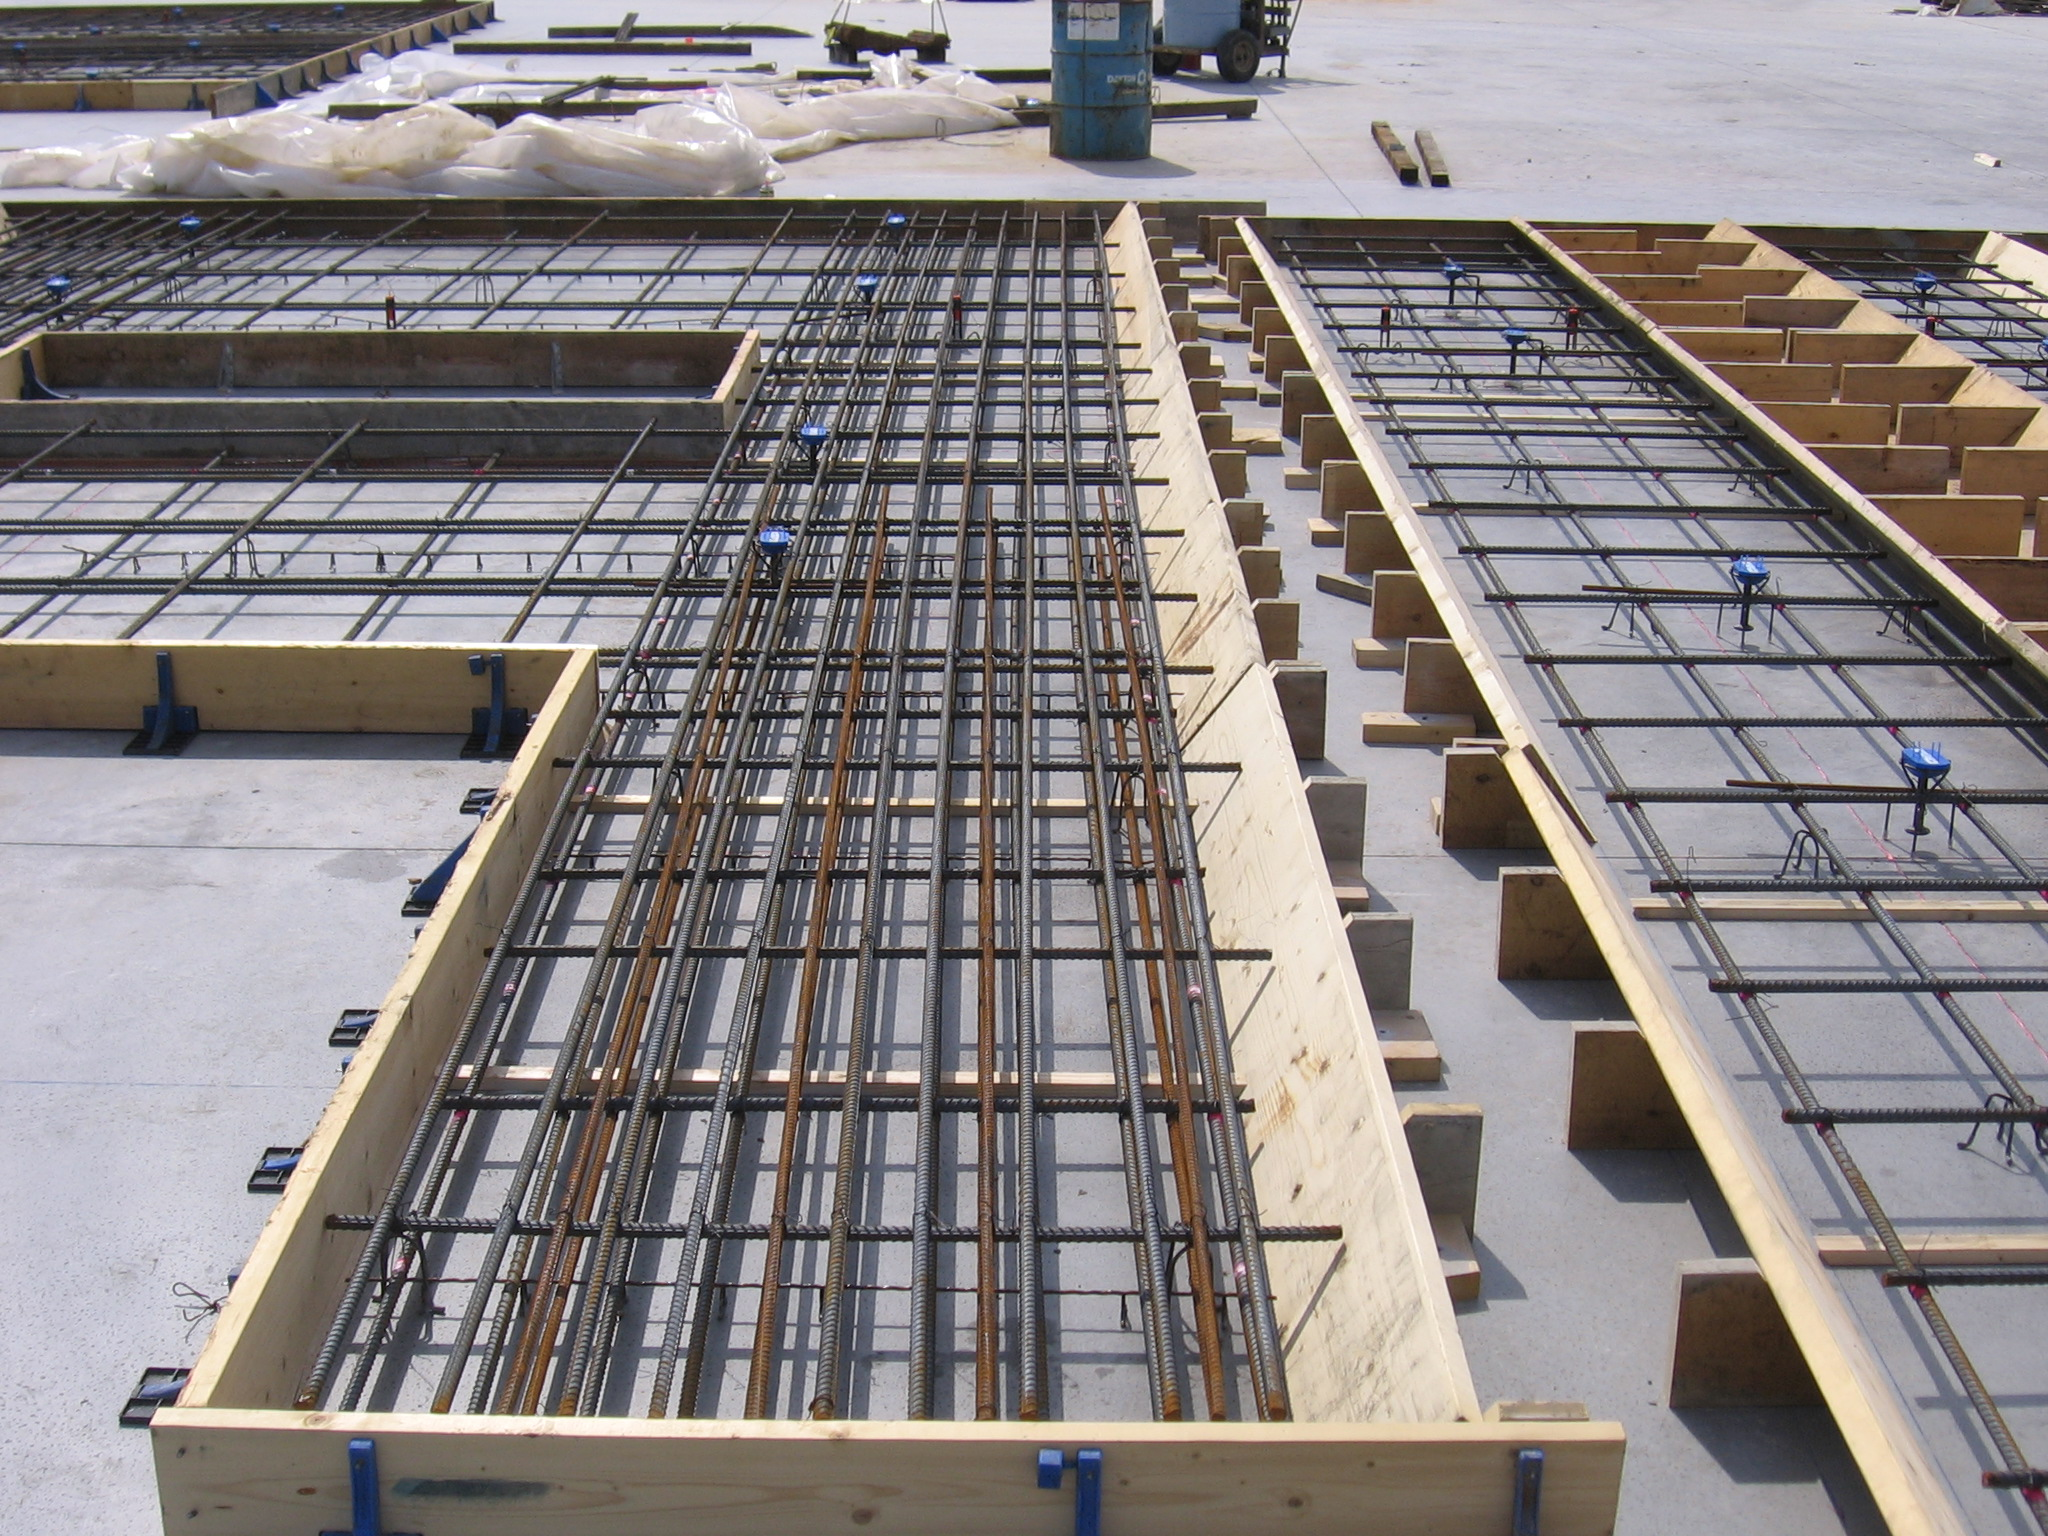 tilt up construction report The american concrete institute (aci), publishers of concrete codes like aci 318  along with many guide and report documents such as aci 5511r, describes.